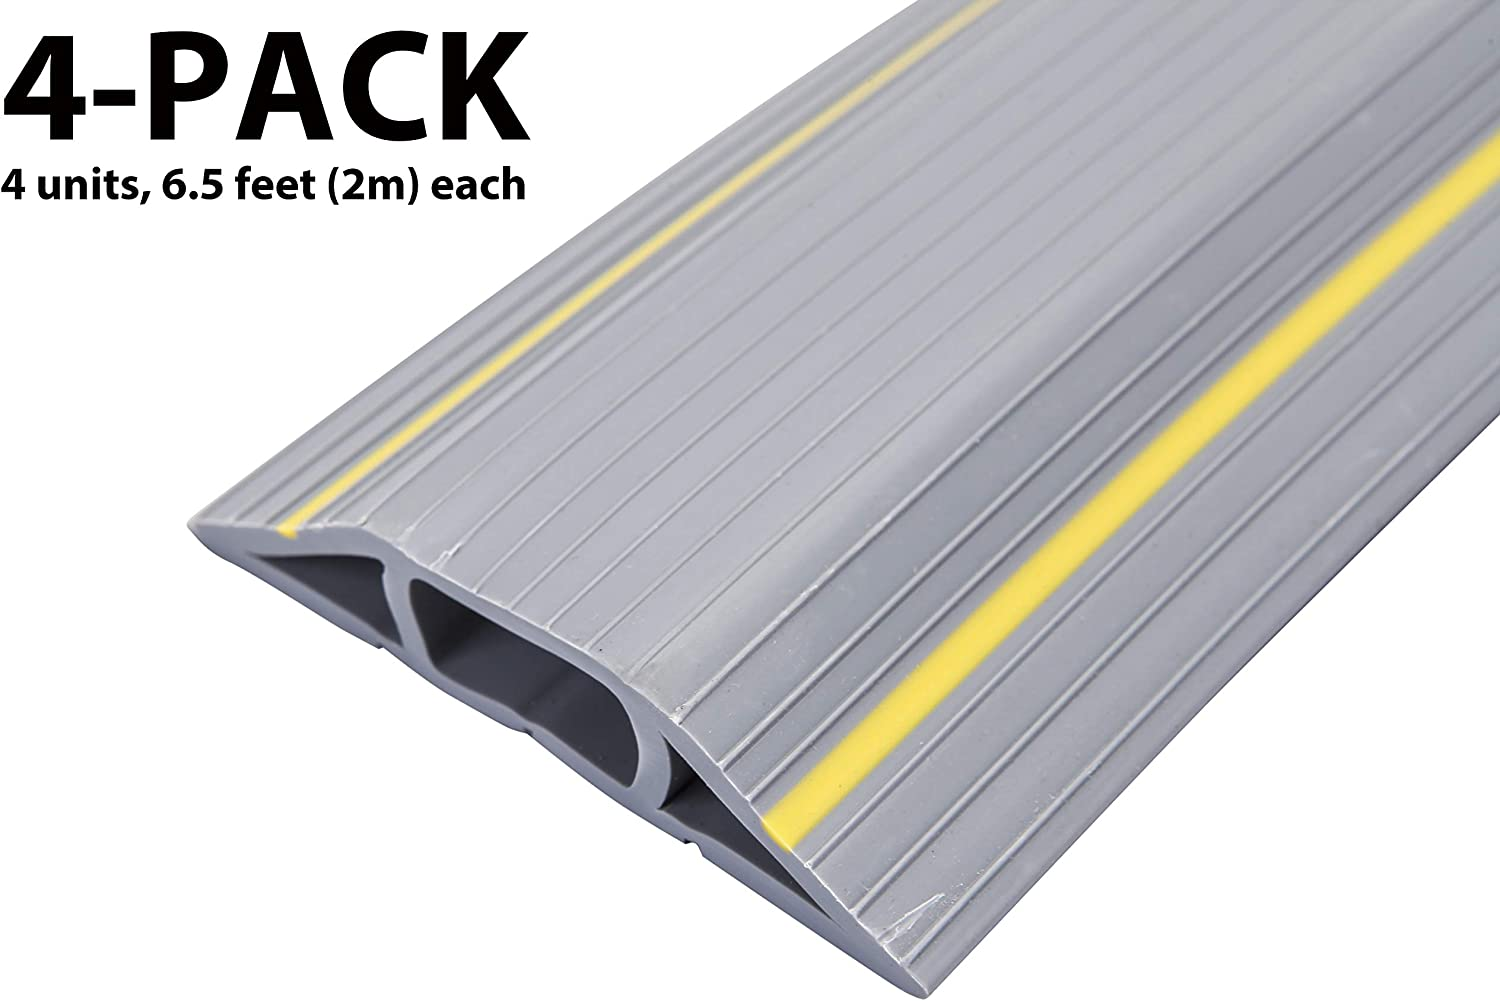 (4-Pack) 6.5 Feet Heavy Duty Cable Protector + Cord Cover - 3 Cord Channels - Durable Gray PVC is Flexible, Odor Free, Easy to Unroll - Conceal Wires at Home, Office, Warehouse, Workshop, Concerts